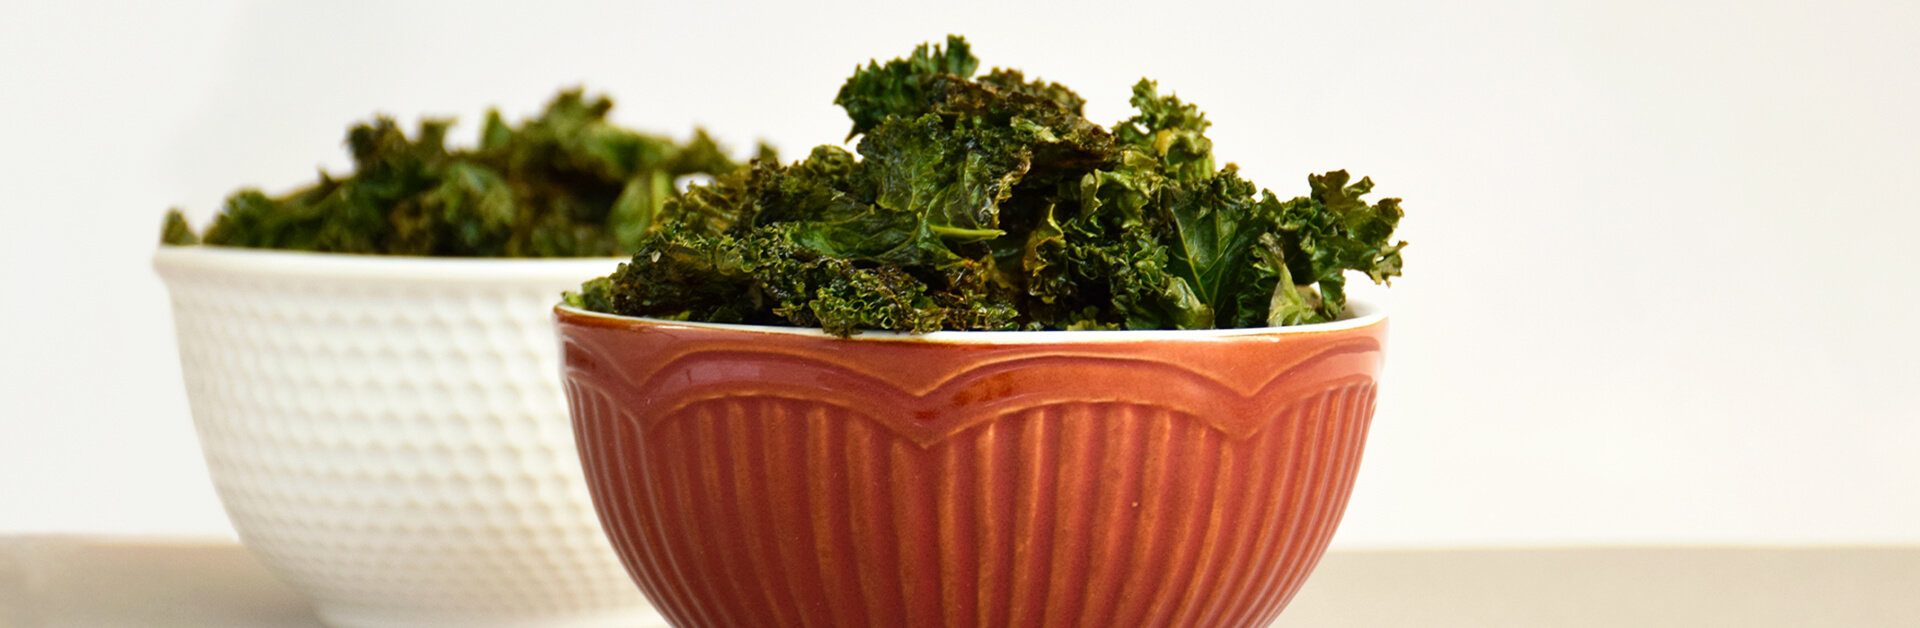 Two bowls of baked kale chips.